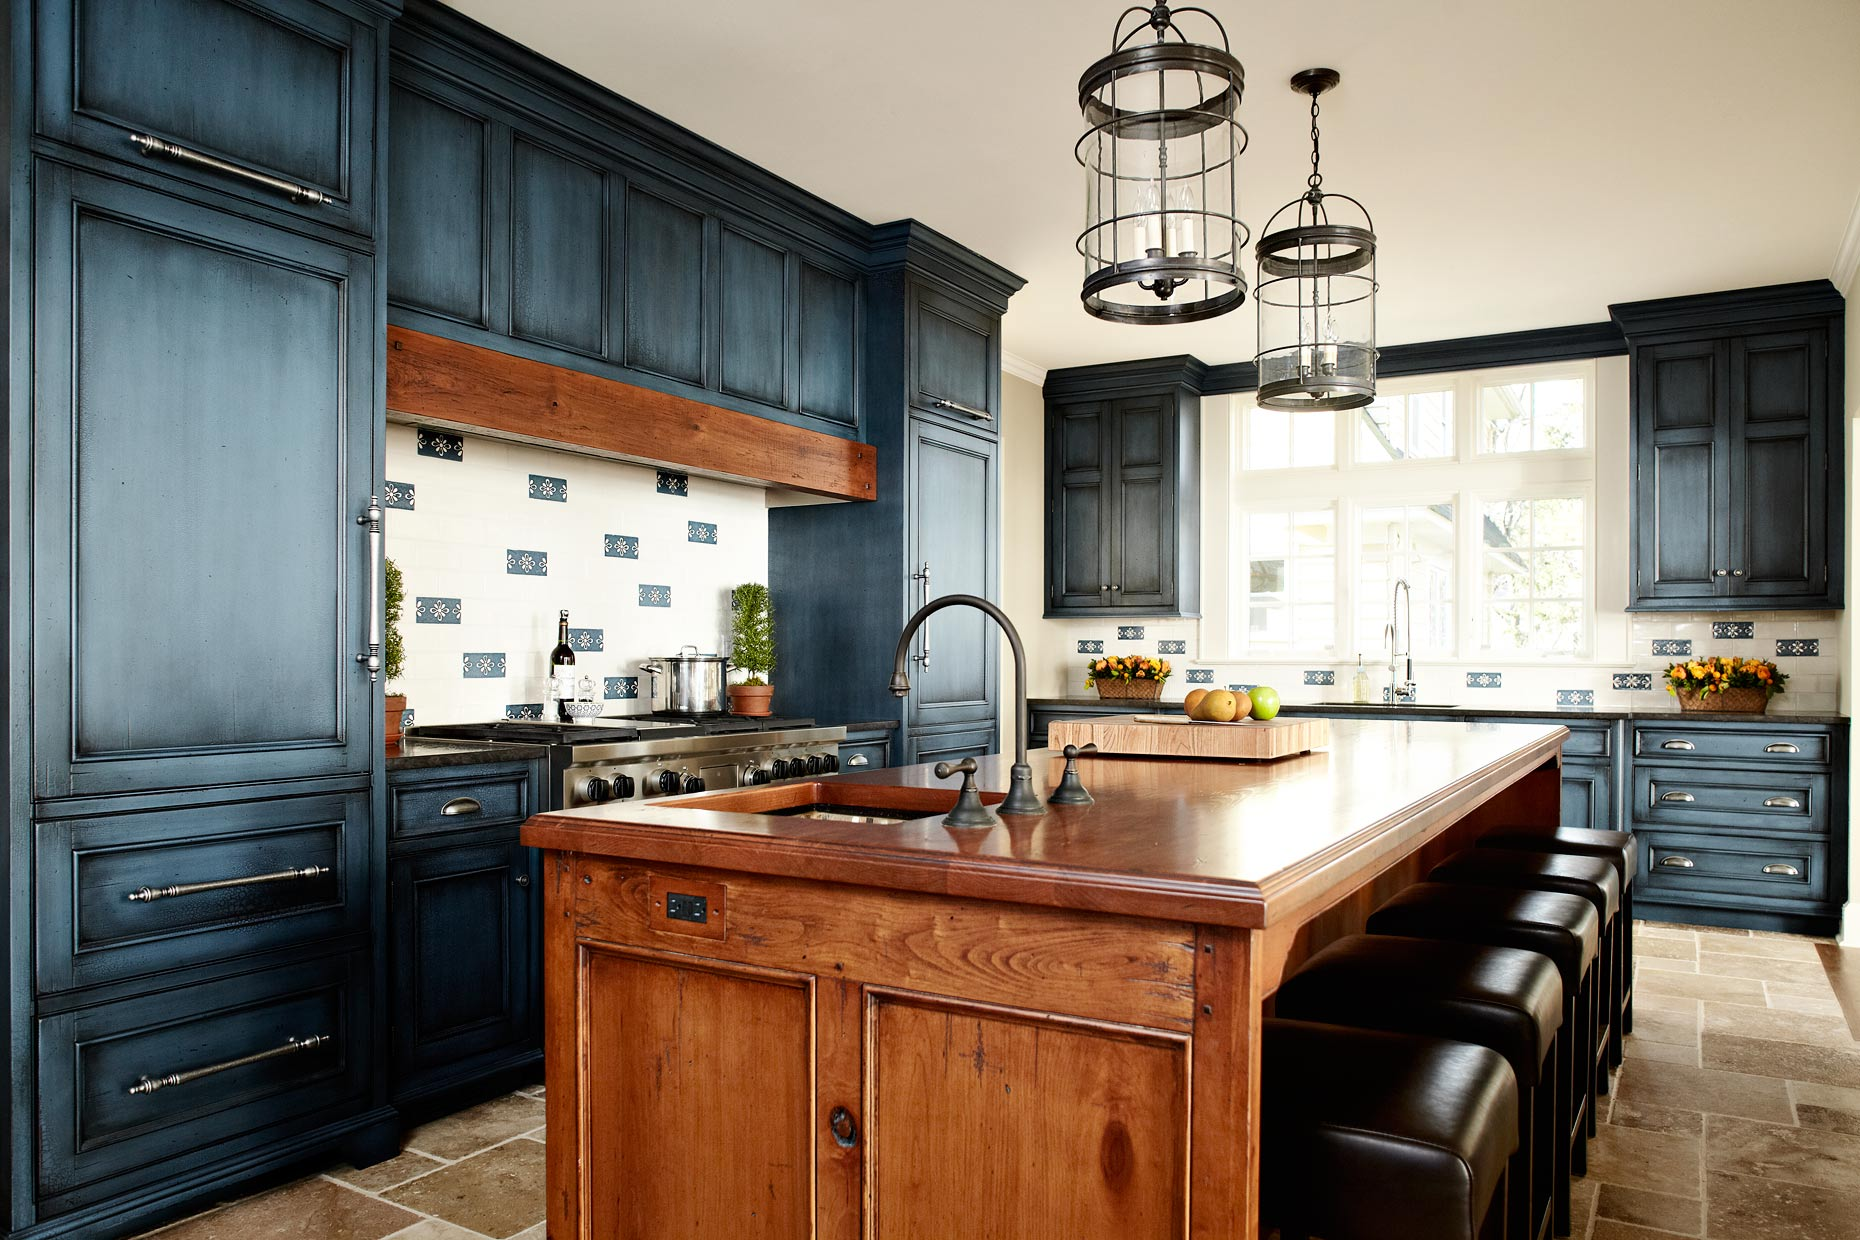 Rustic Wood Kitchen Countertops Rustic Wood Countertops  Reclaimed And Distressed Blog